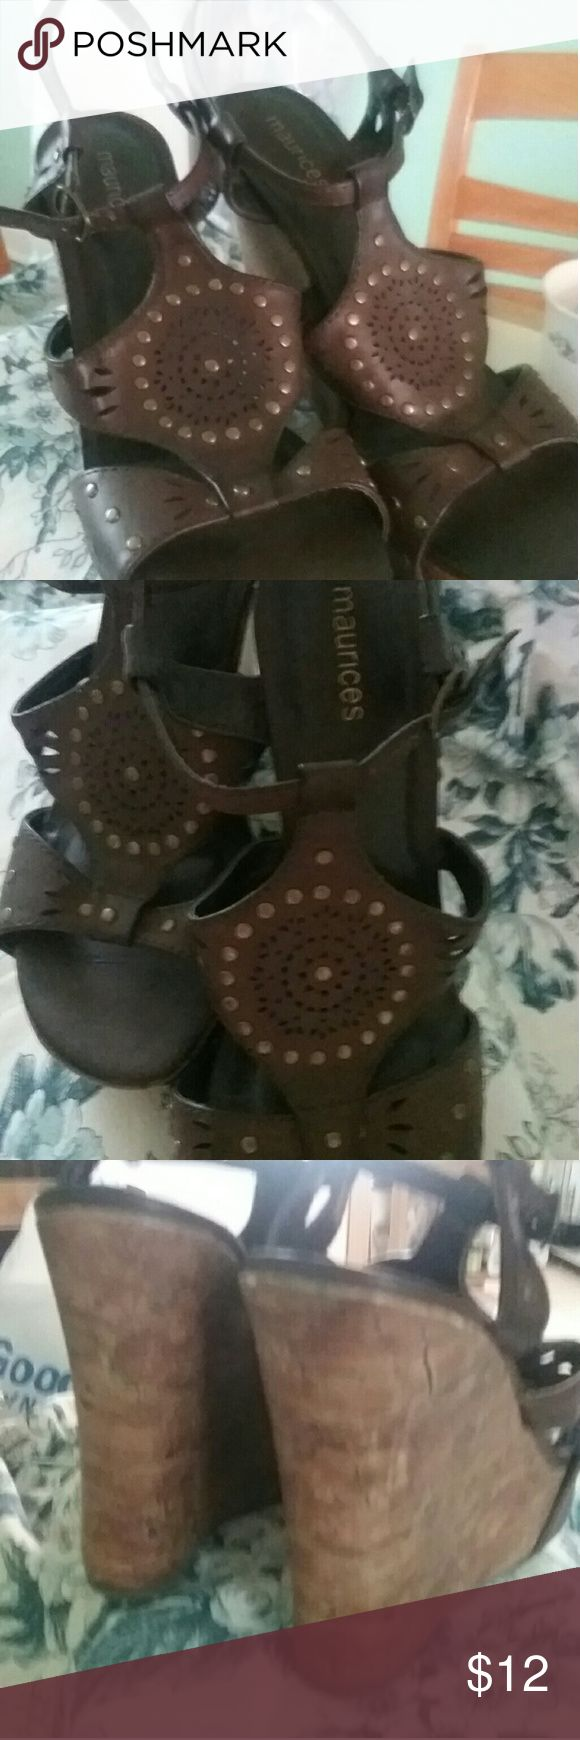 Maurice  shoes Comfy adorable platform shoes ankle strap with beautiful stud pattern .perfect for any outfit Maurices Shoes Platforms